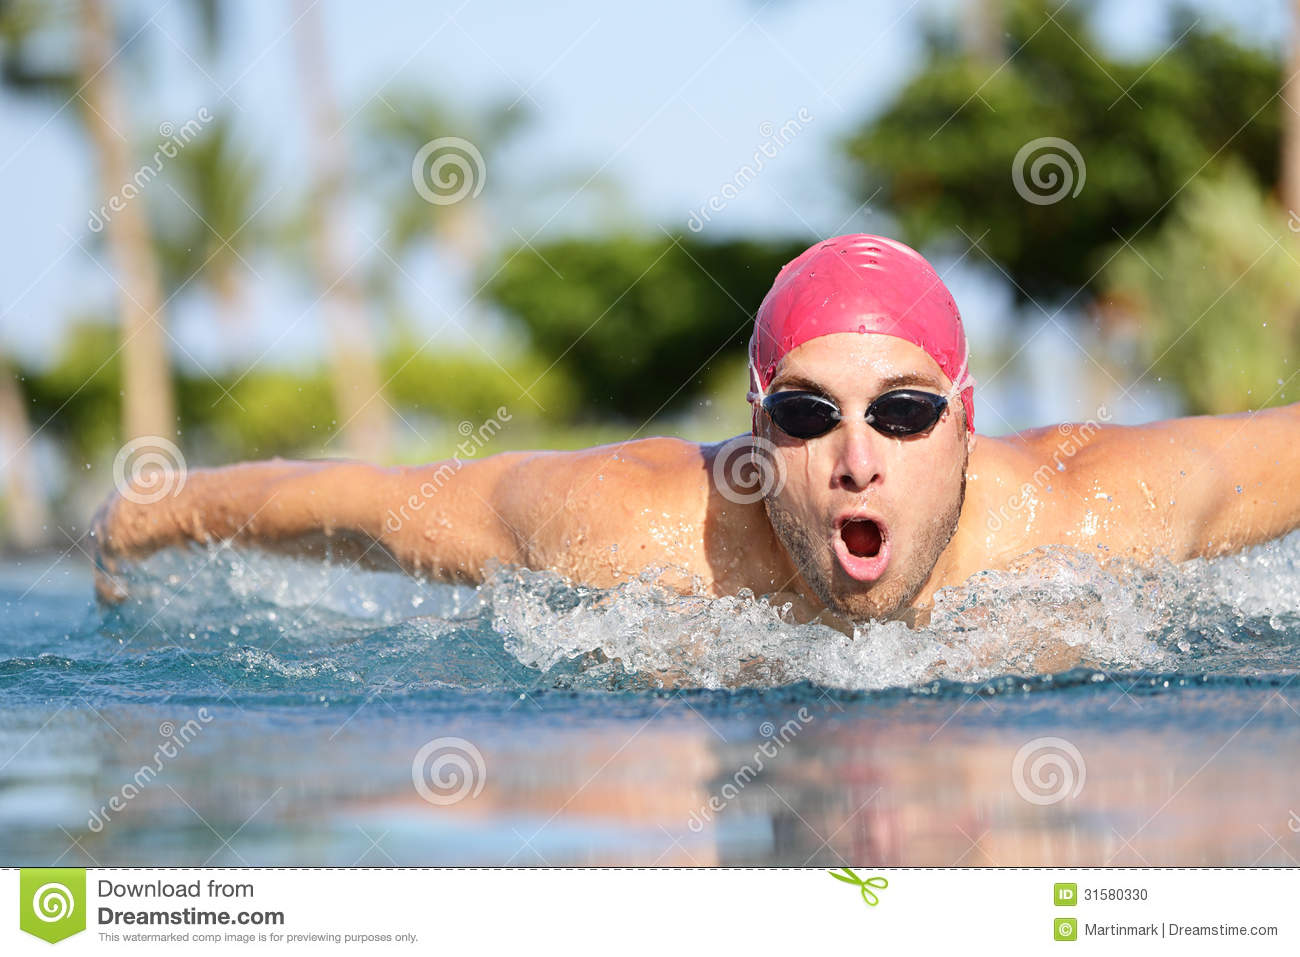 Swimmer Man Swimming Butterfly Strokes In Pool Stock Photo Image 31580330